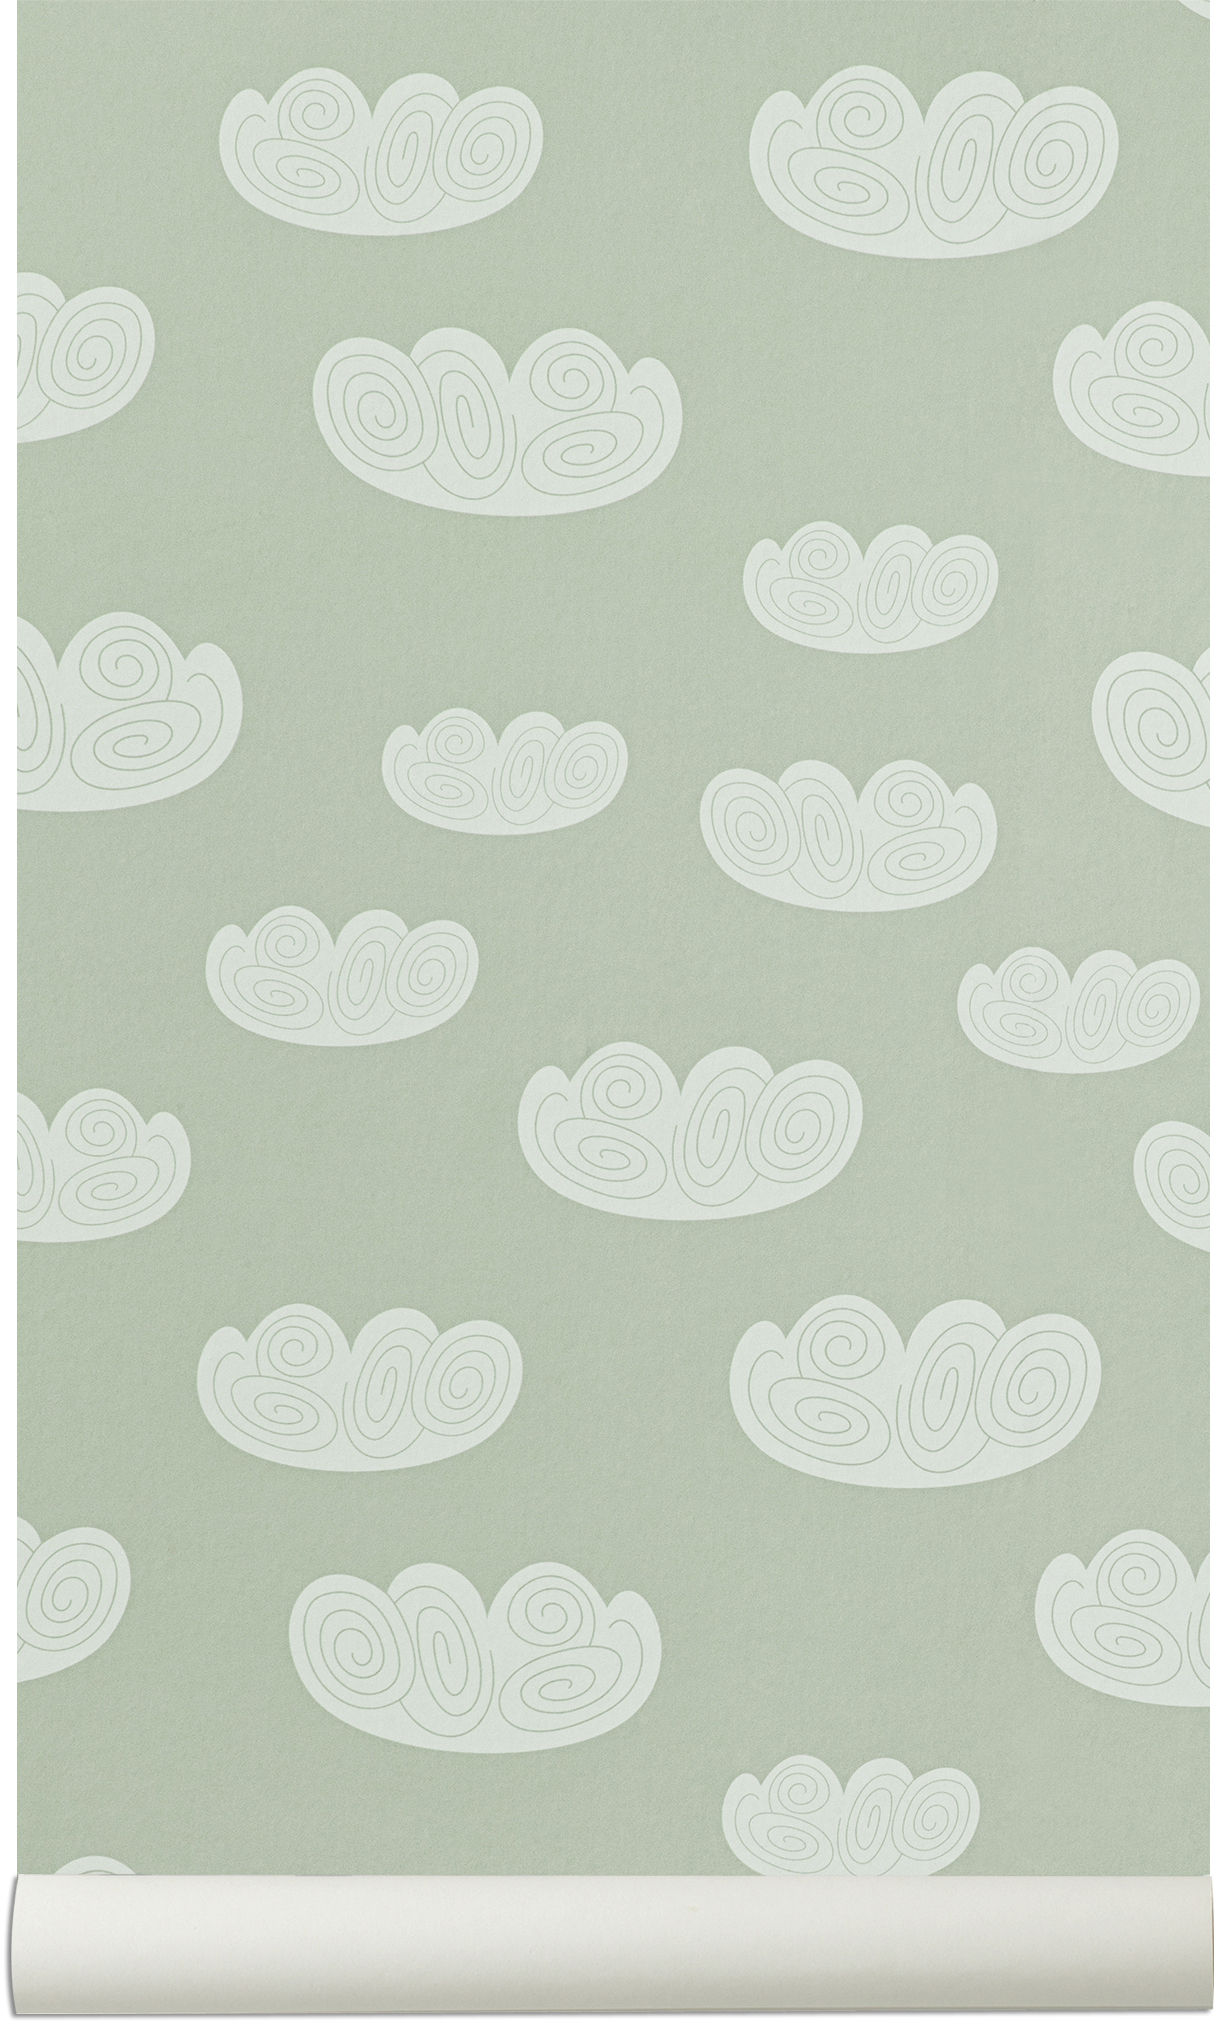 Decoration - Wallpaper & Wall Stickers - Cloud Wallpaper by Ferm Living - Mint - Non-woven fabric